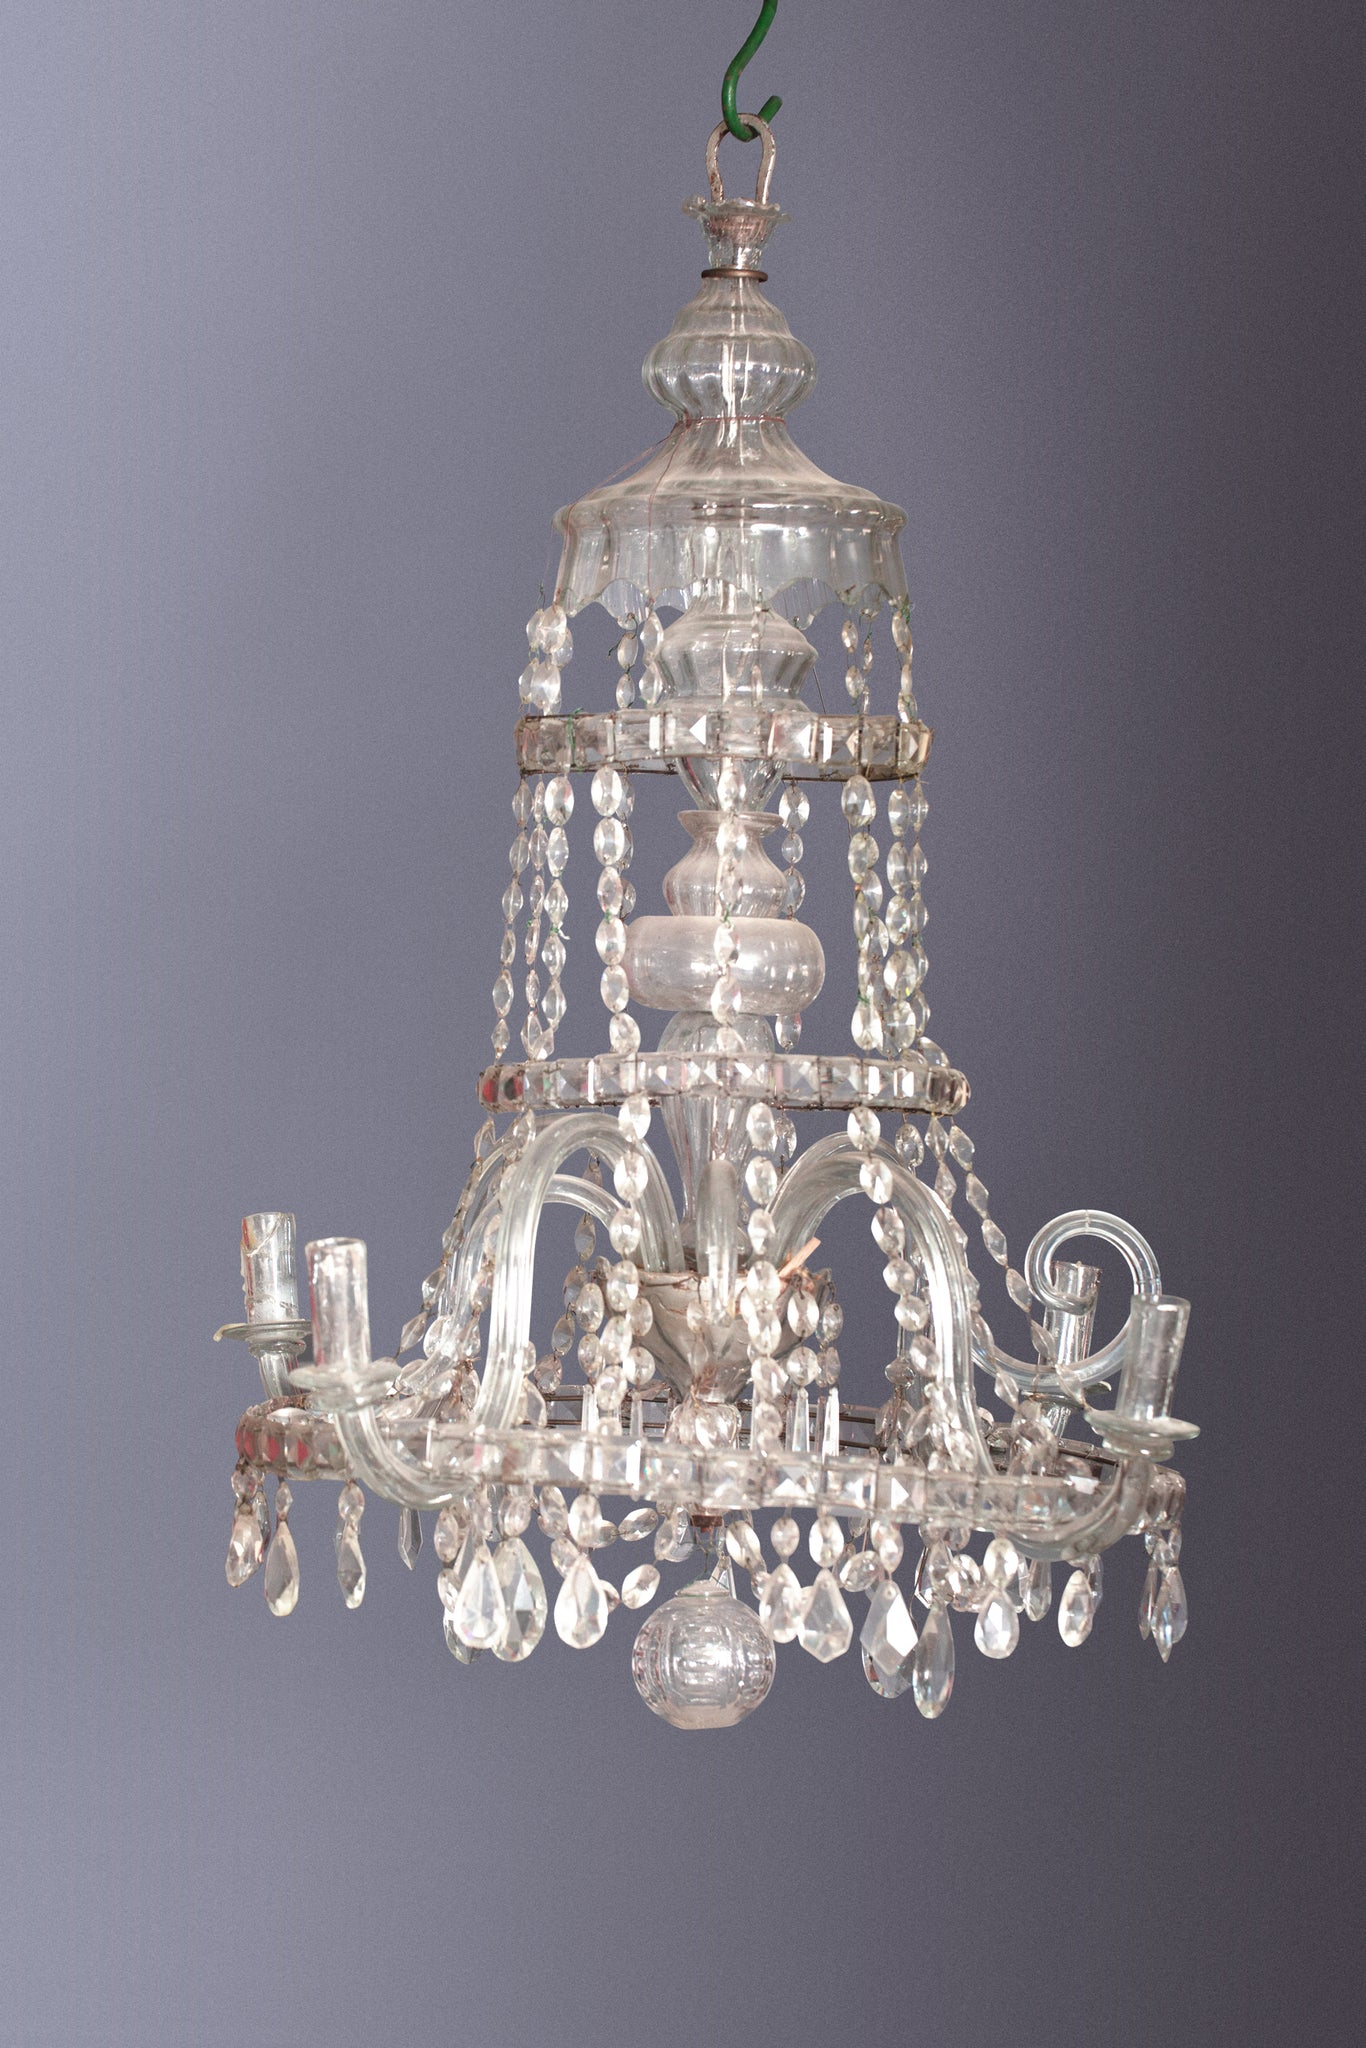 18th Century French Crystal Chandelier with Blown Arms & Cups